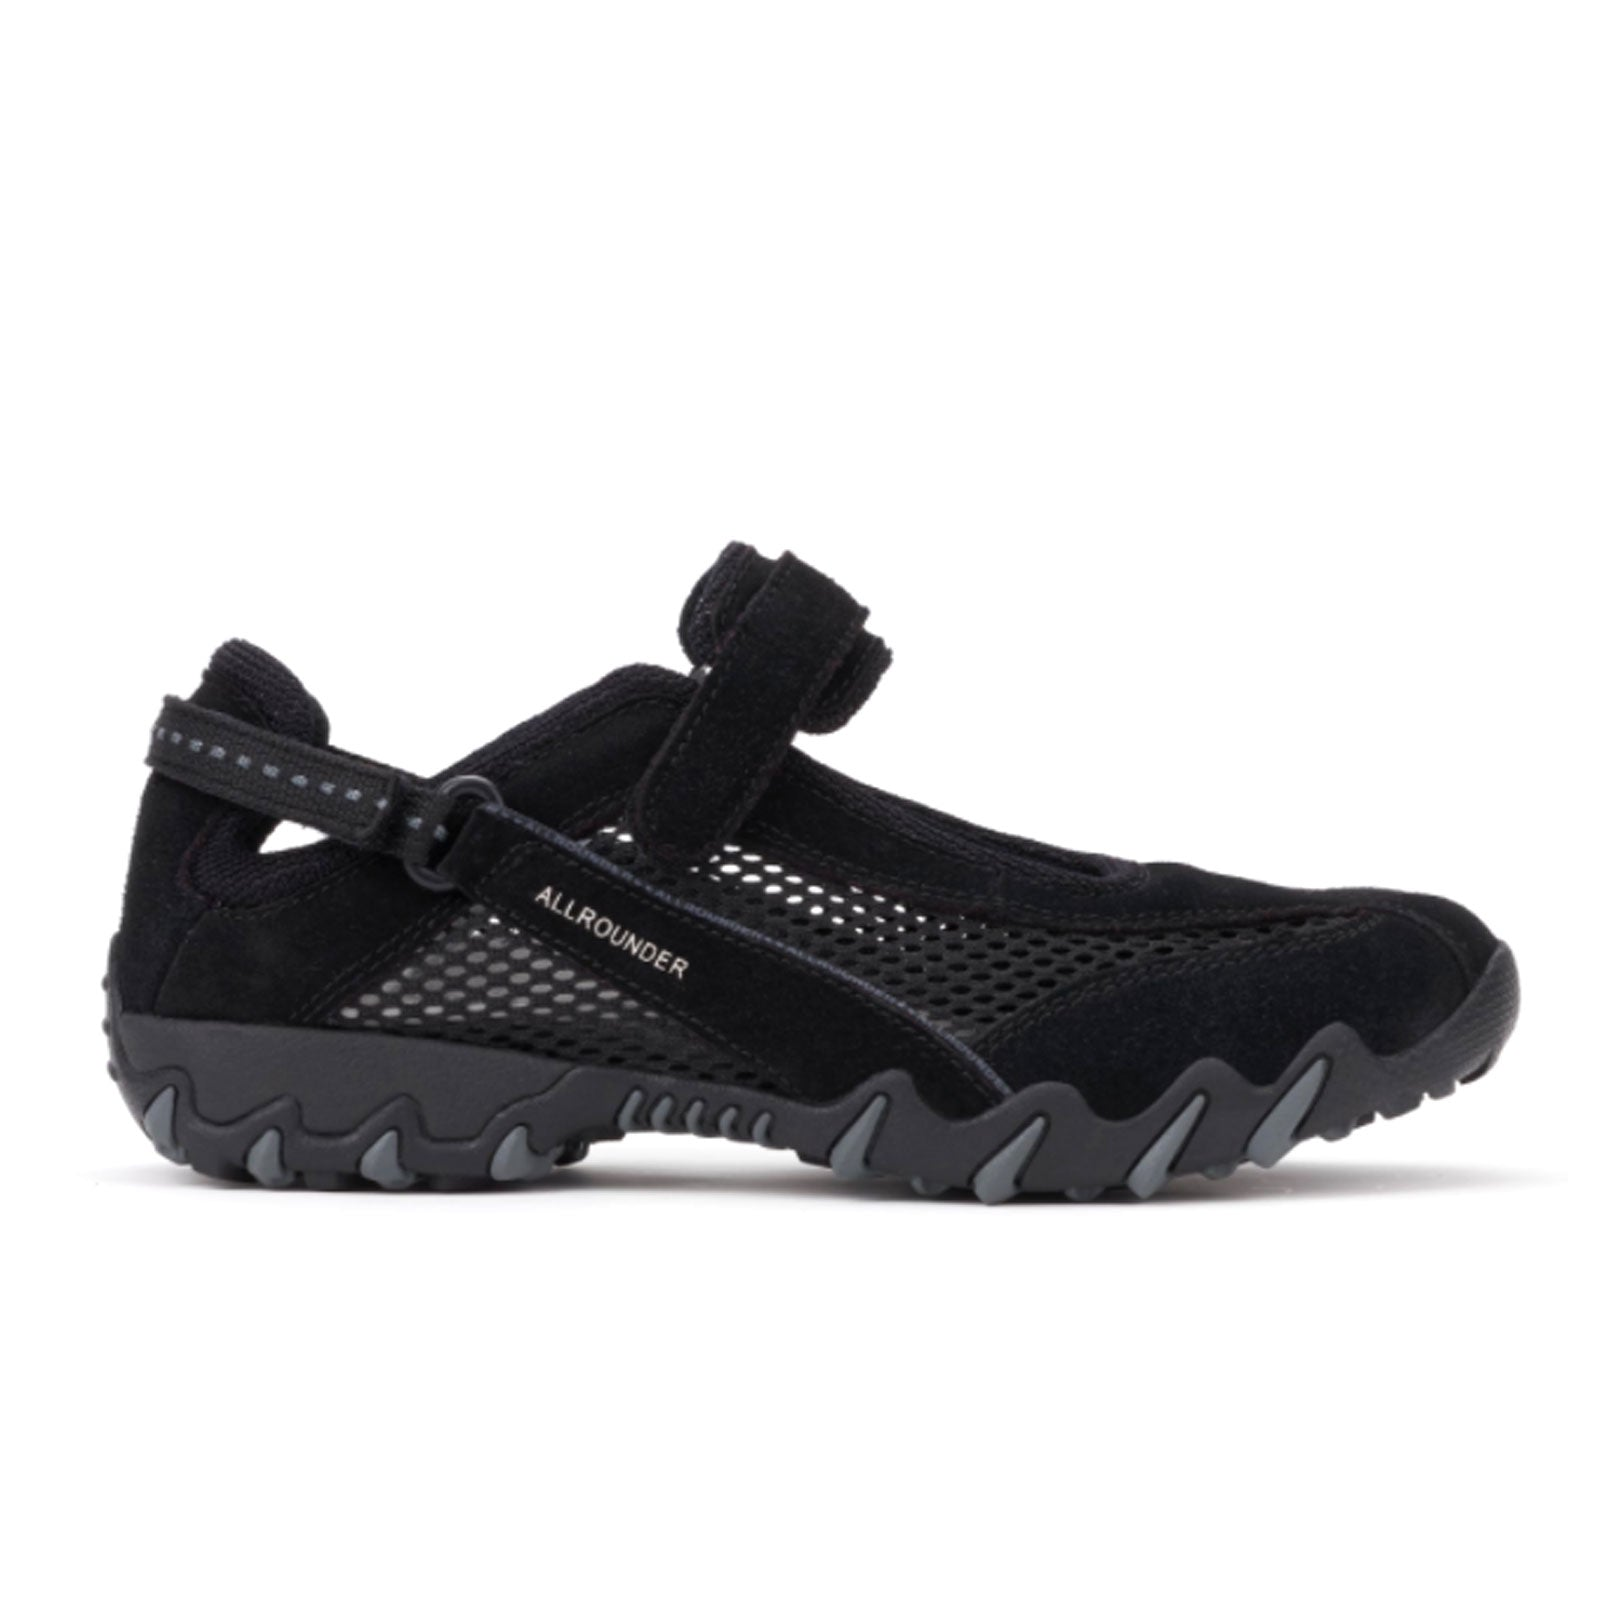 Mephisto Niro (Women) - Black Suede/Mesh Dress/Casual|Slip Ons - The Heel Shoe Fitters